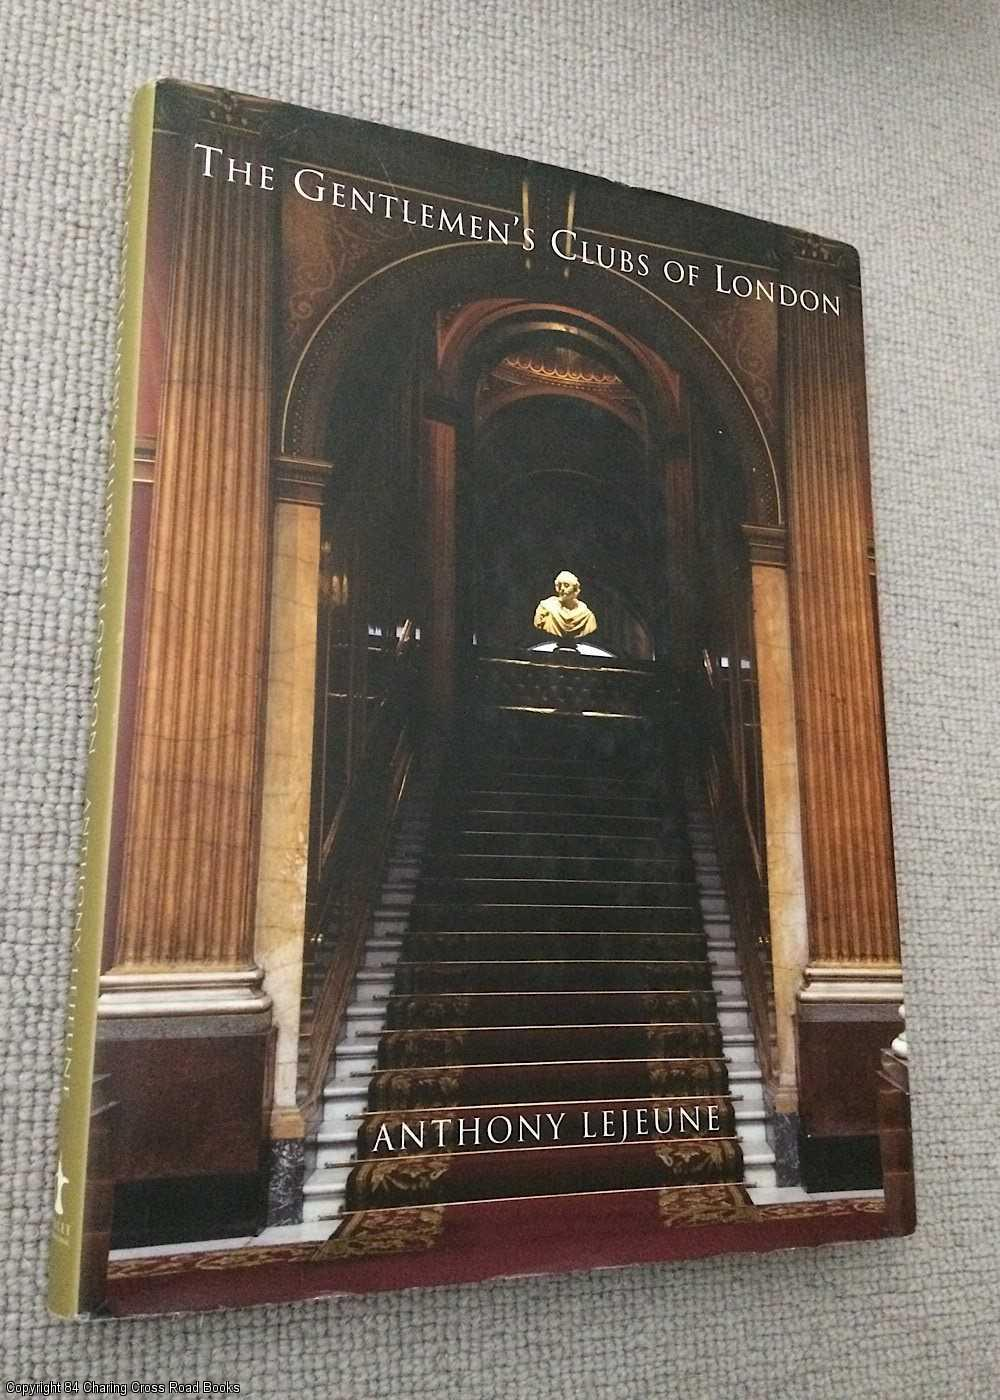 ANTHONY LEJEUNE - The Gentlemen's Clubs of London